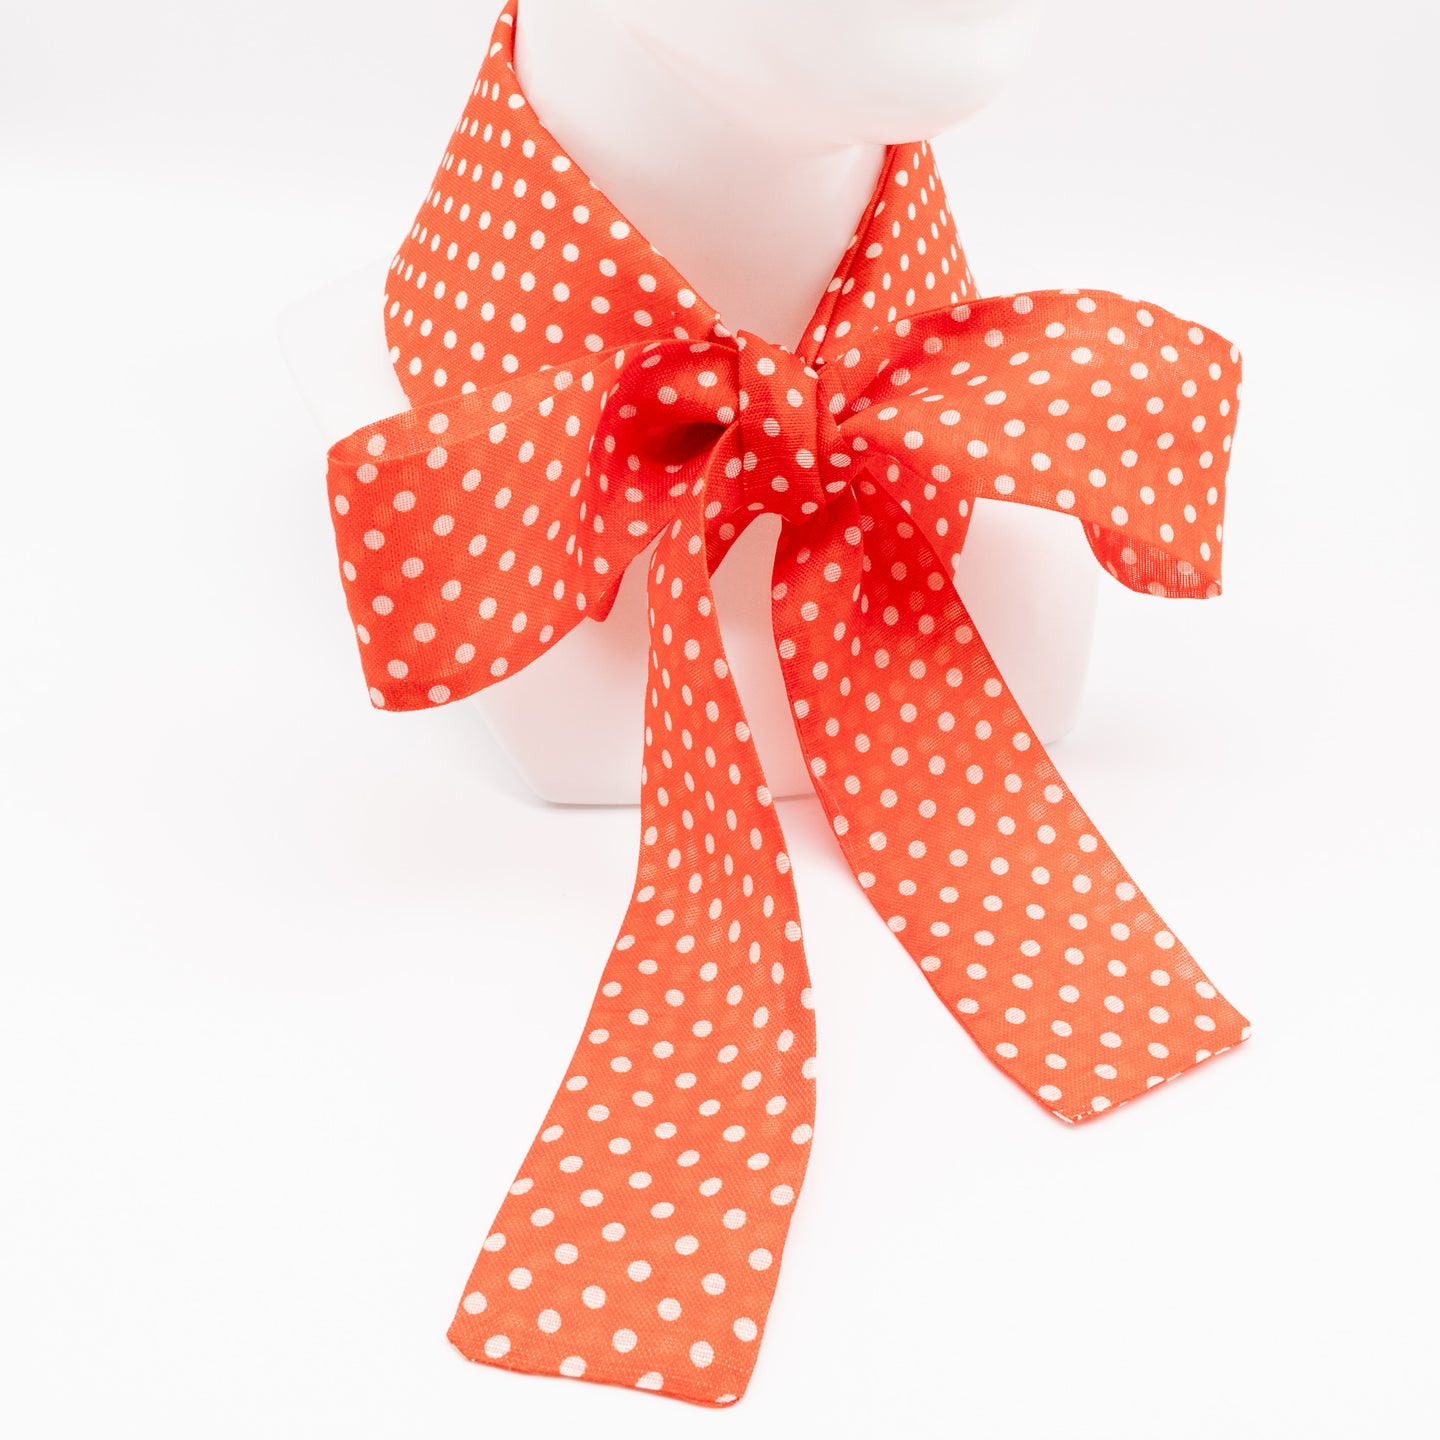 Handcrafted unique neckwear for women made from silk/linen organza, orange with white dots..